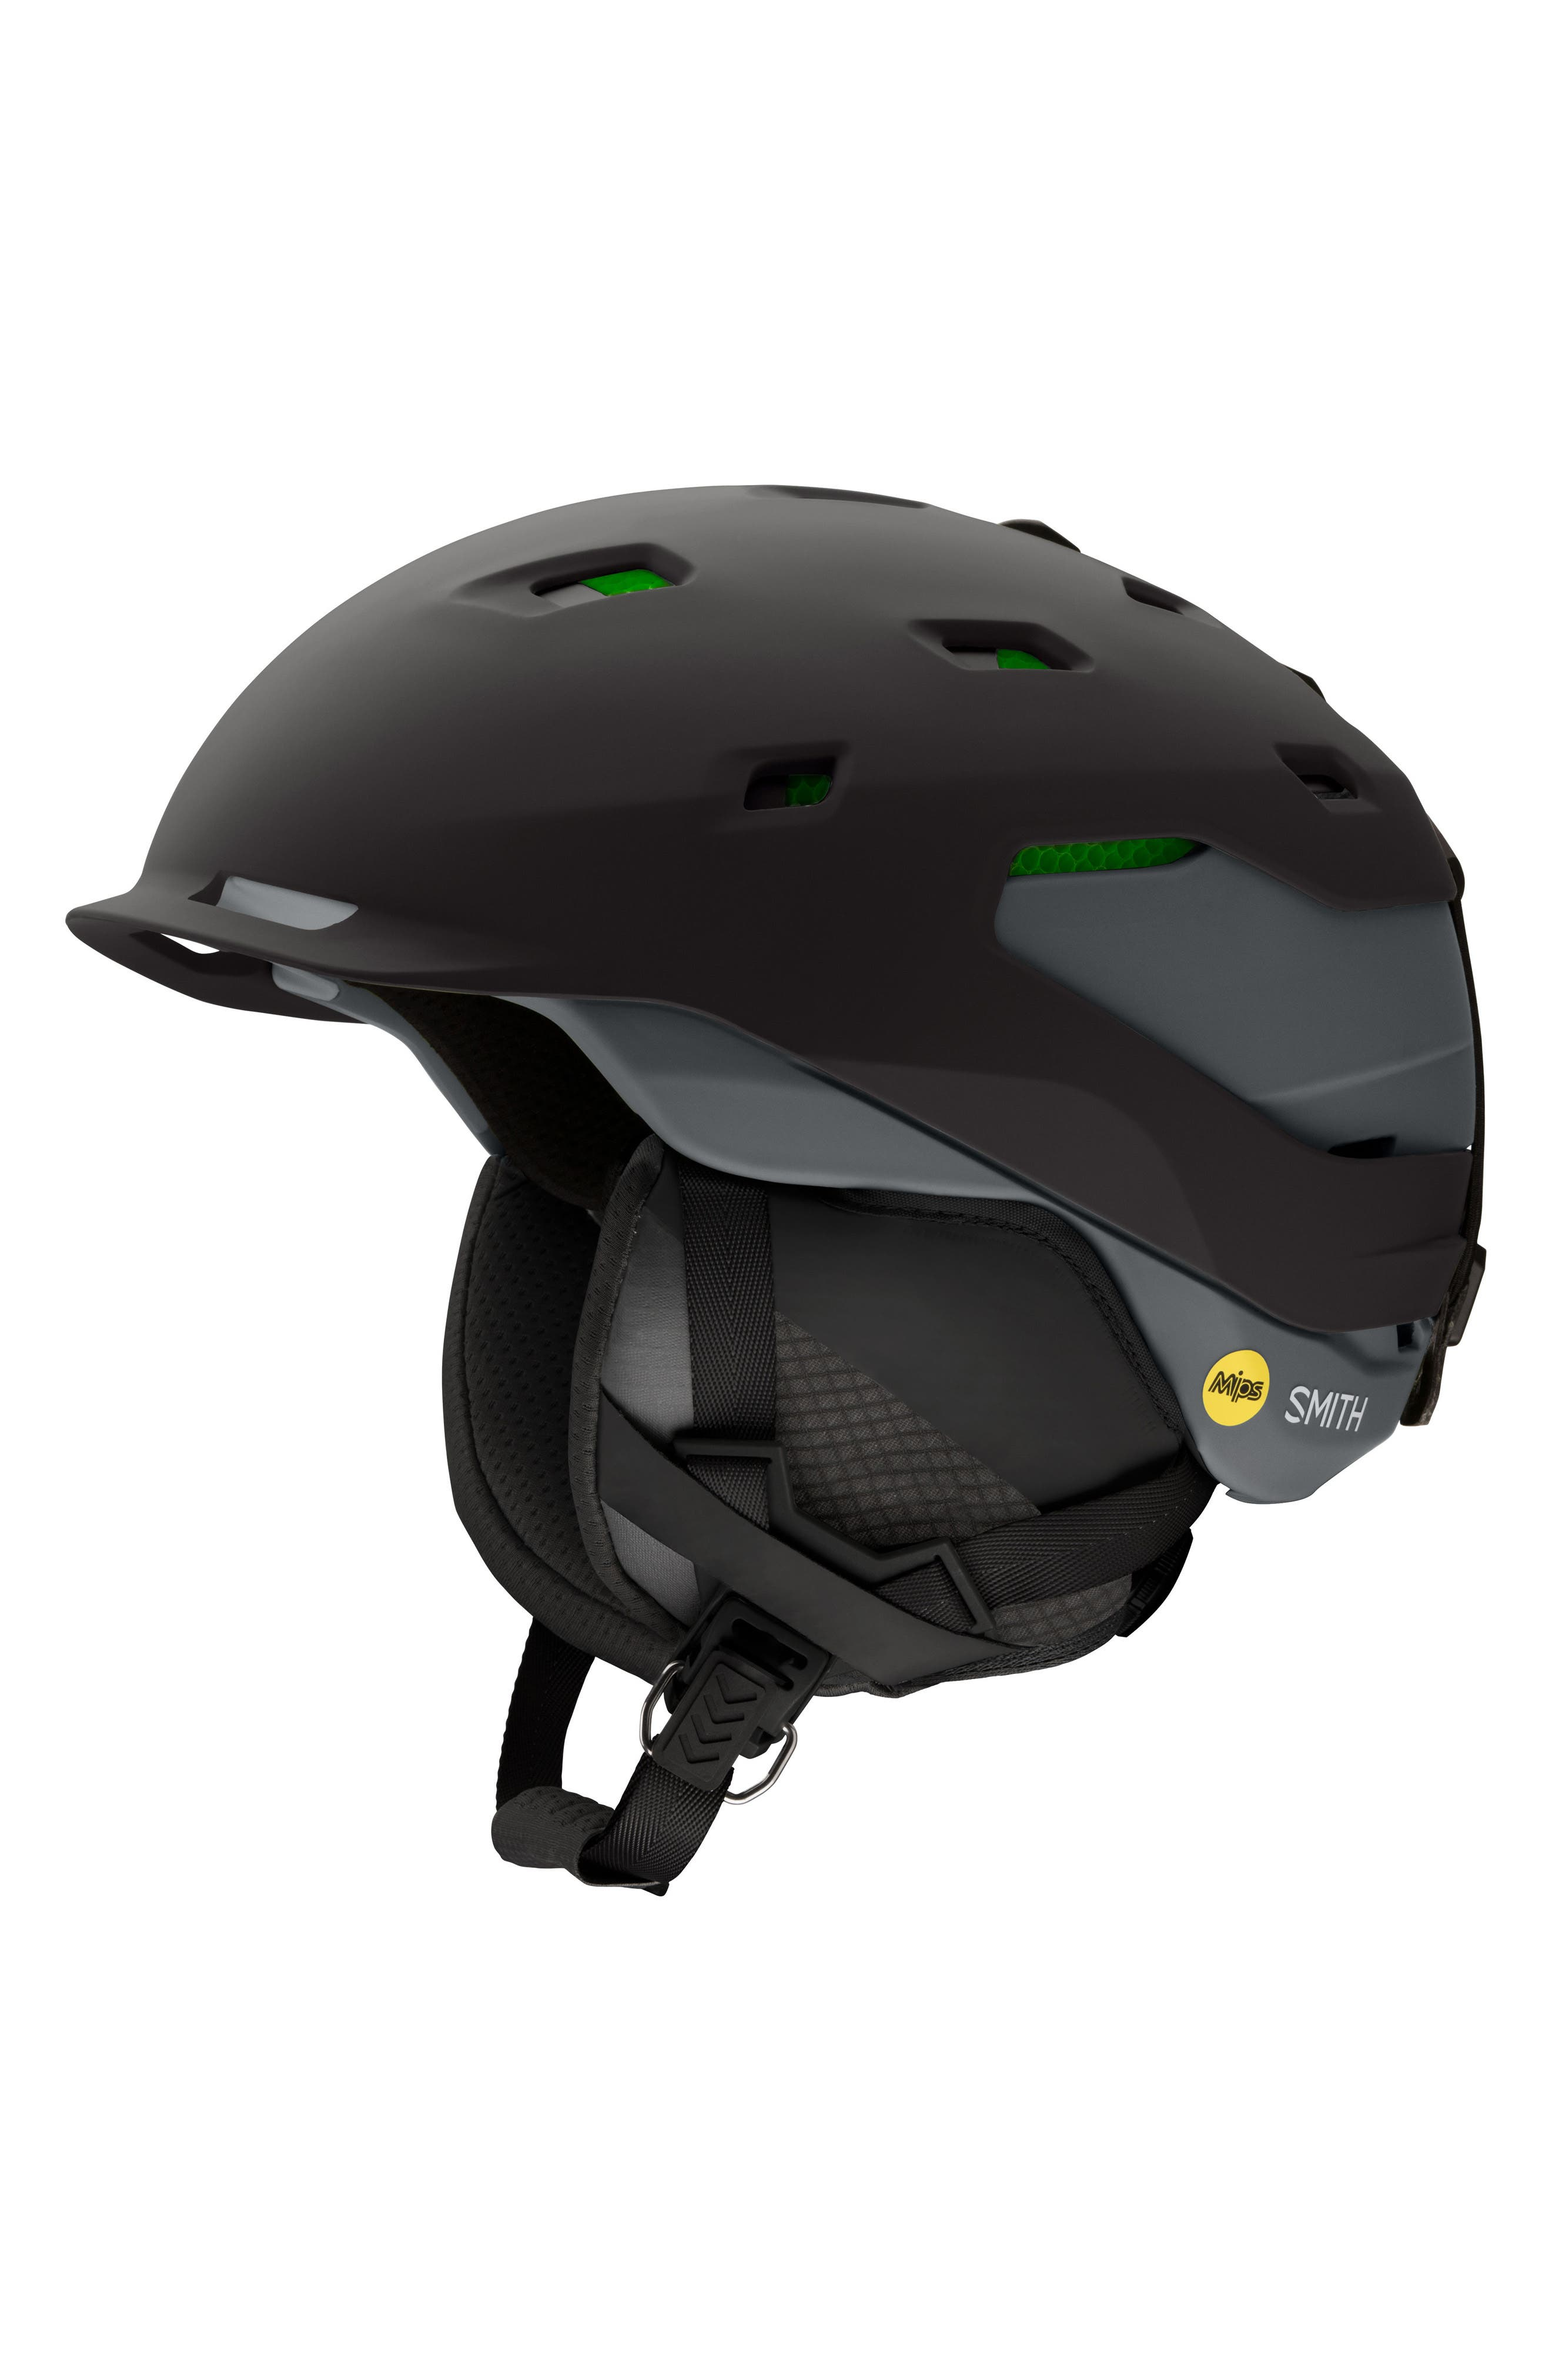 Alternate Image 1 Selected - Smith Quantum with MIPS Snow Helmet